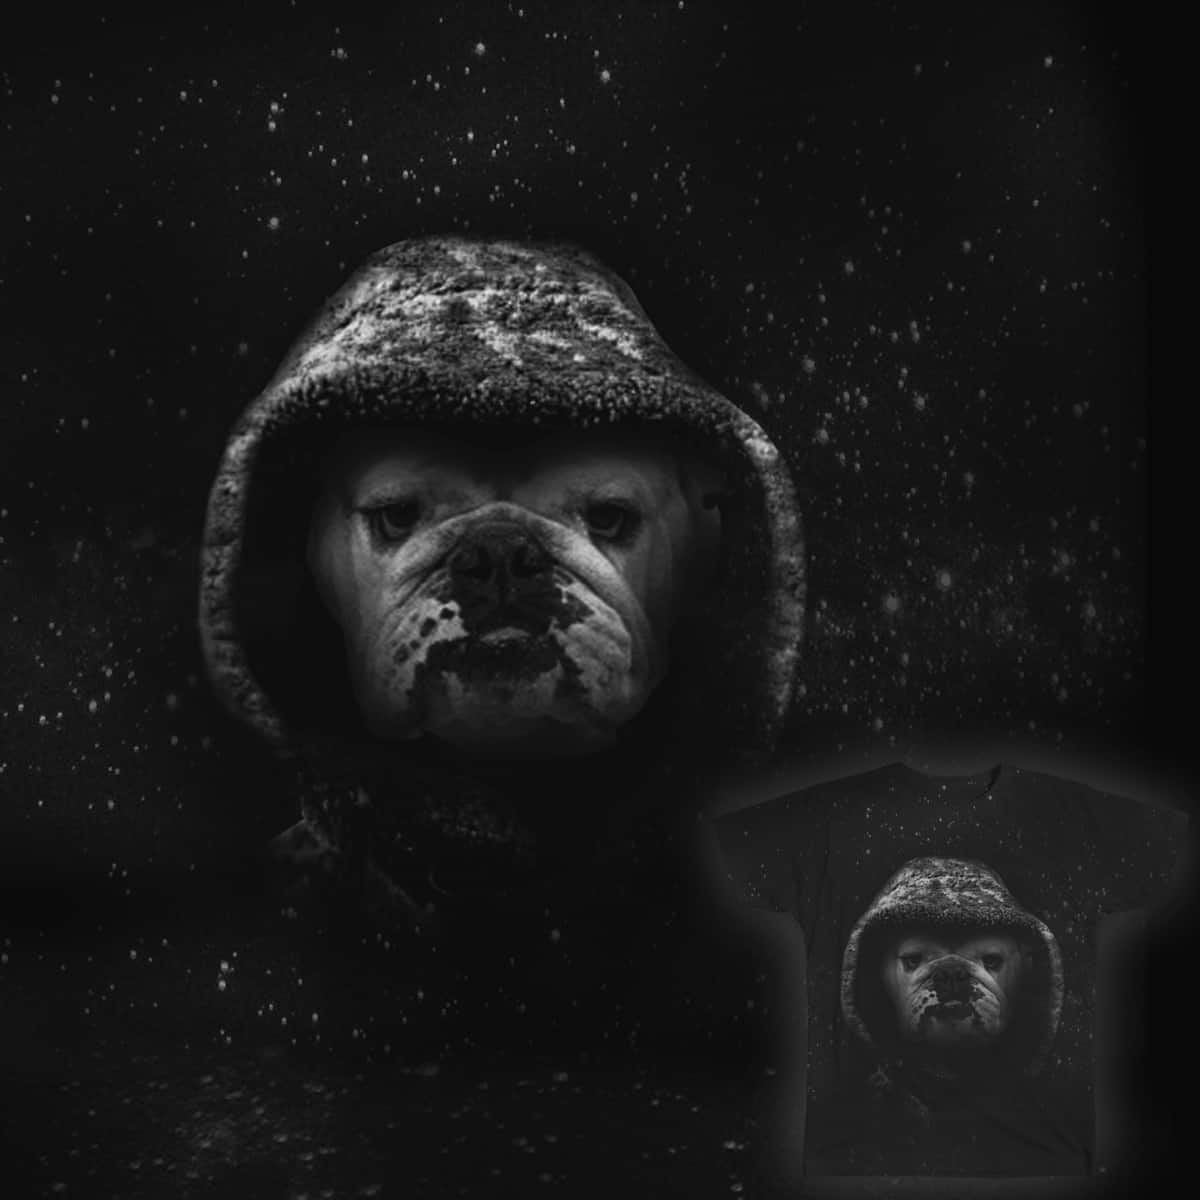 Hooded Bulldog by SylvanH on Threadless